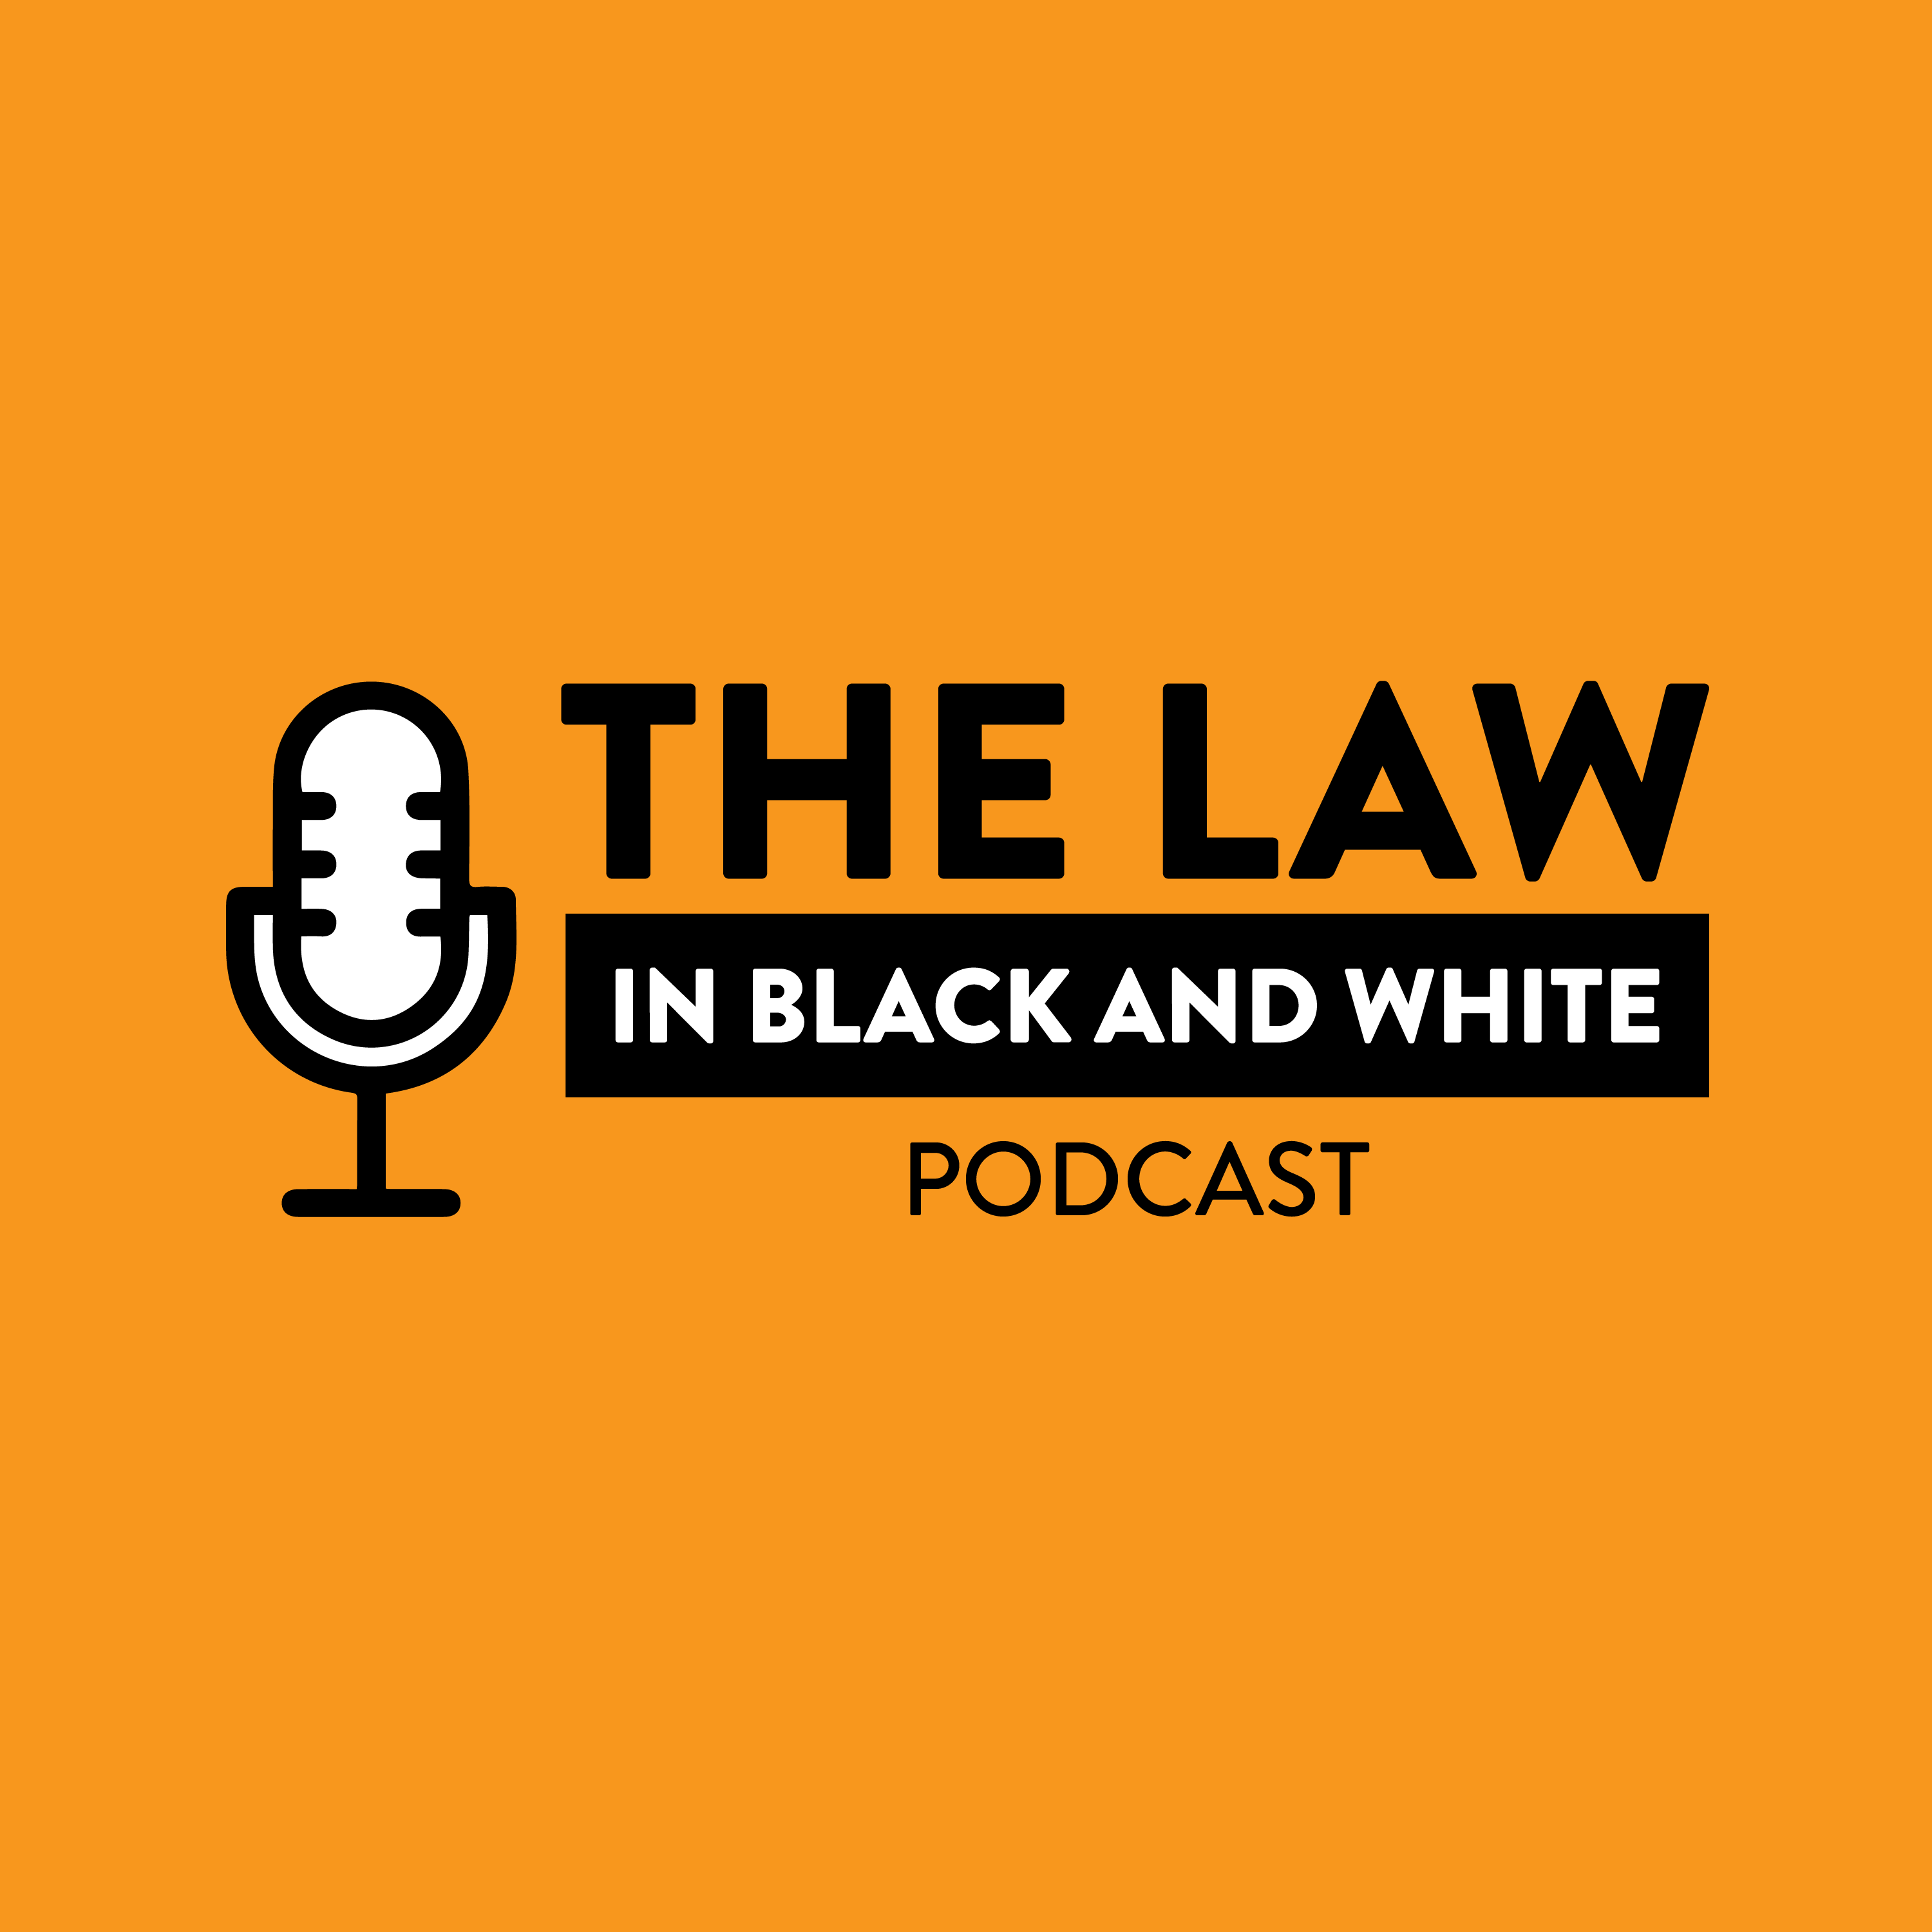 The Law in Black and White